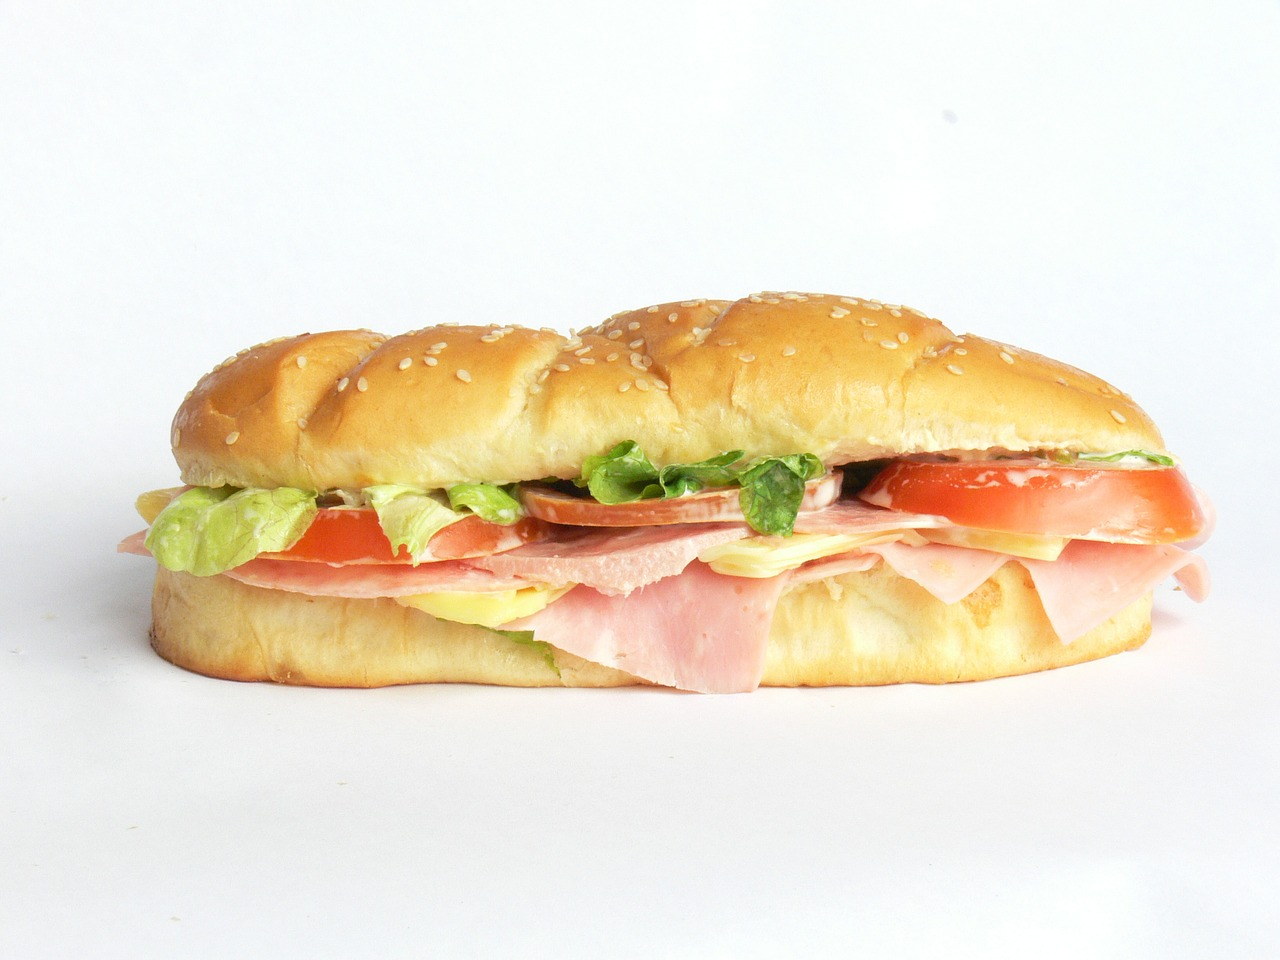 A regular sandwich_PD